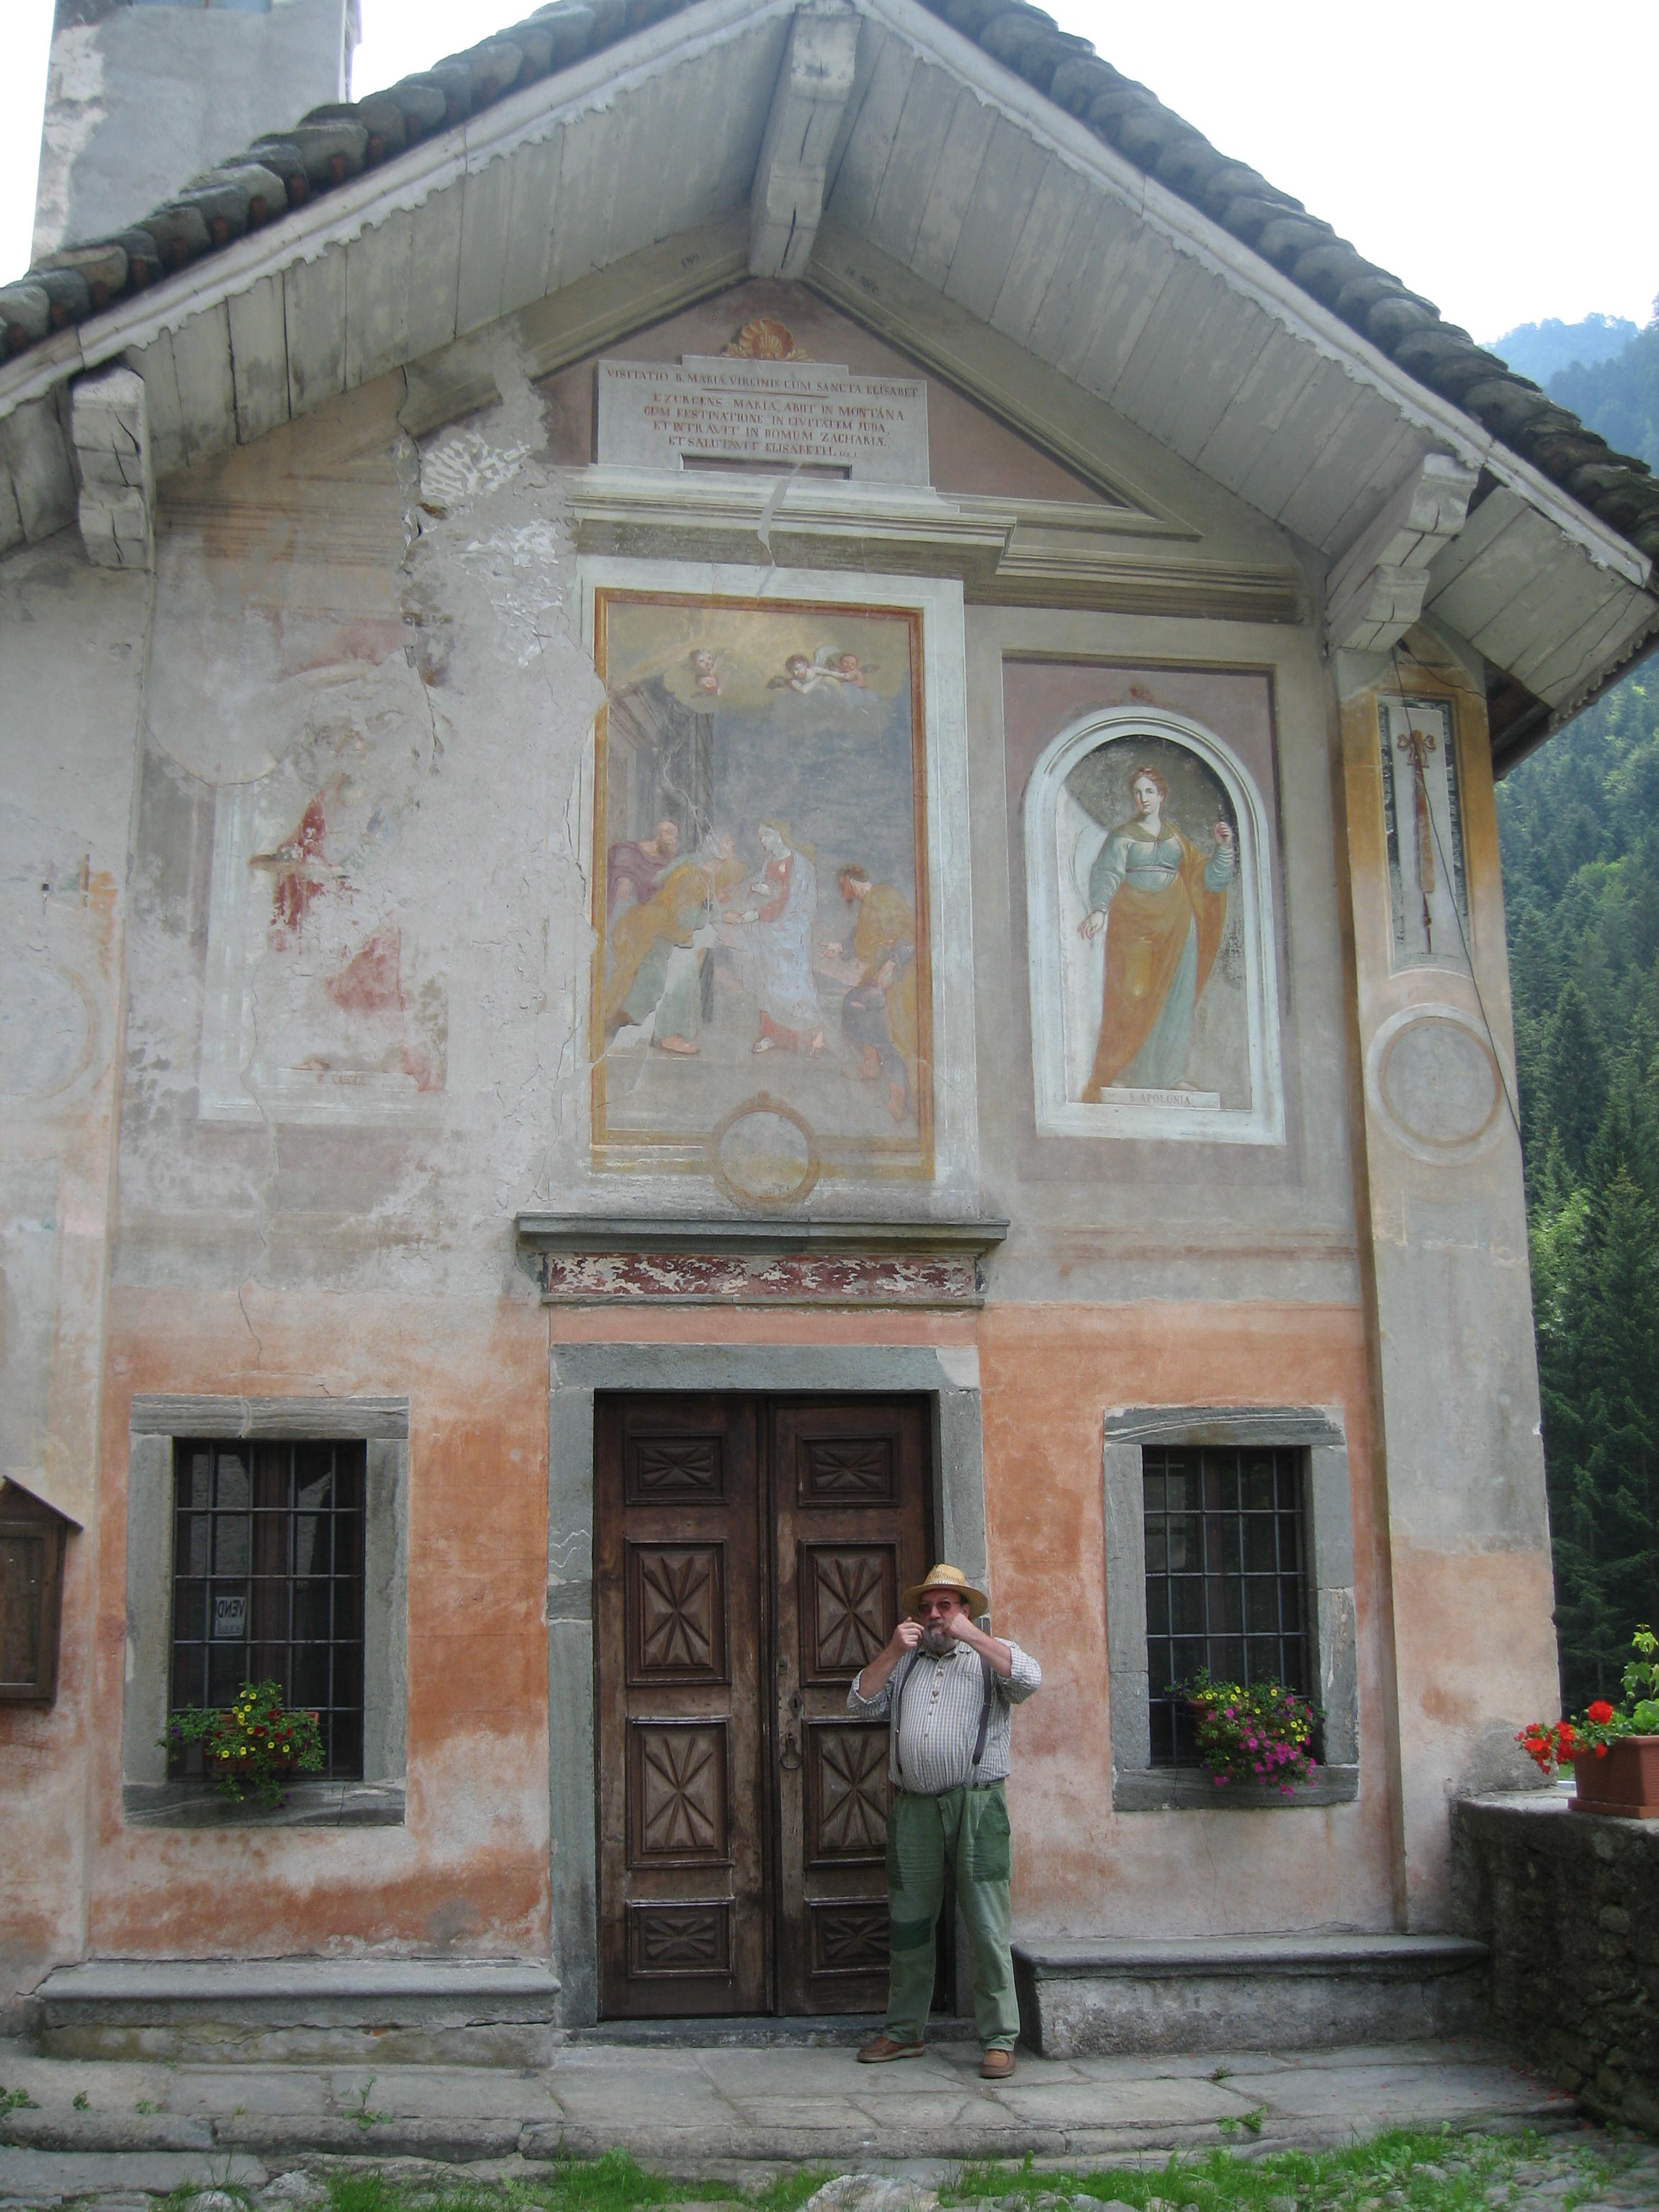 Jean-Mark Jacquier posing in front of the chapel at Boccorio in Valsesia, 2011. (Archives J.M. Jacquier).